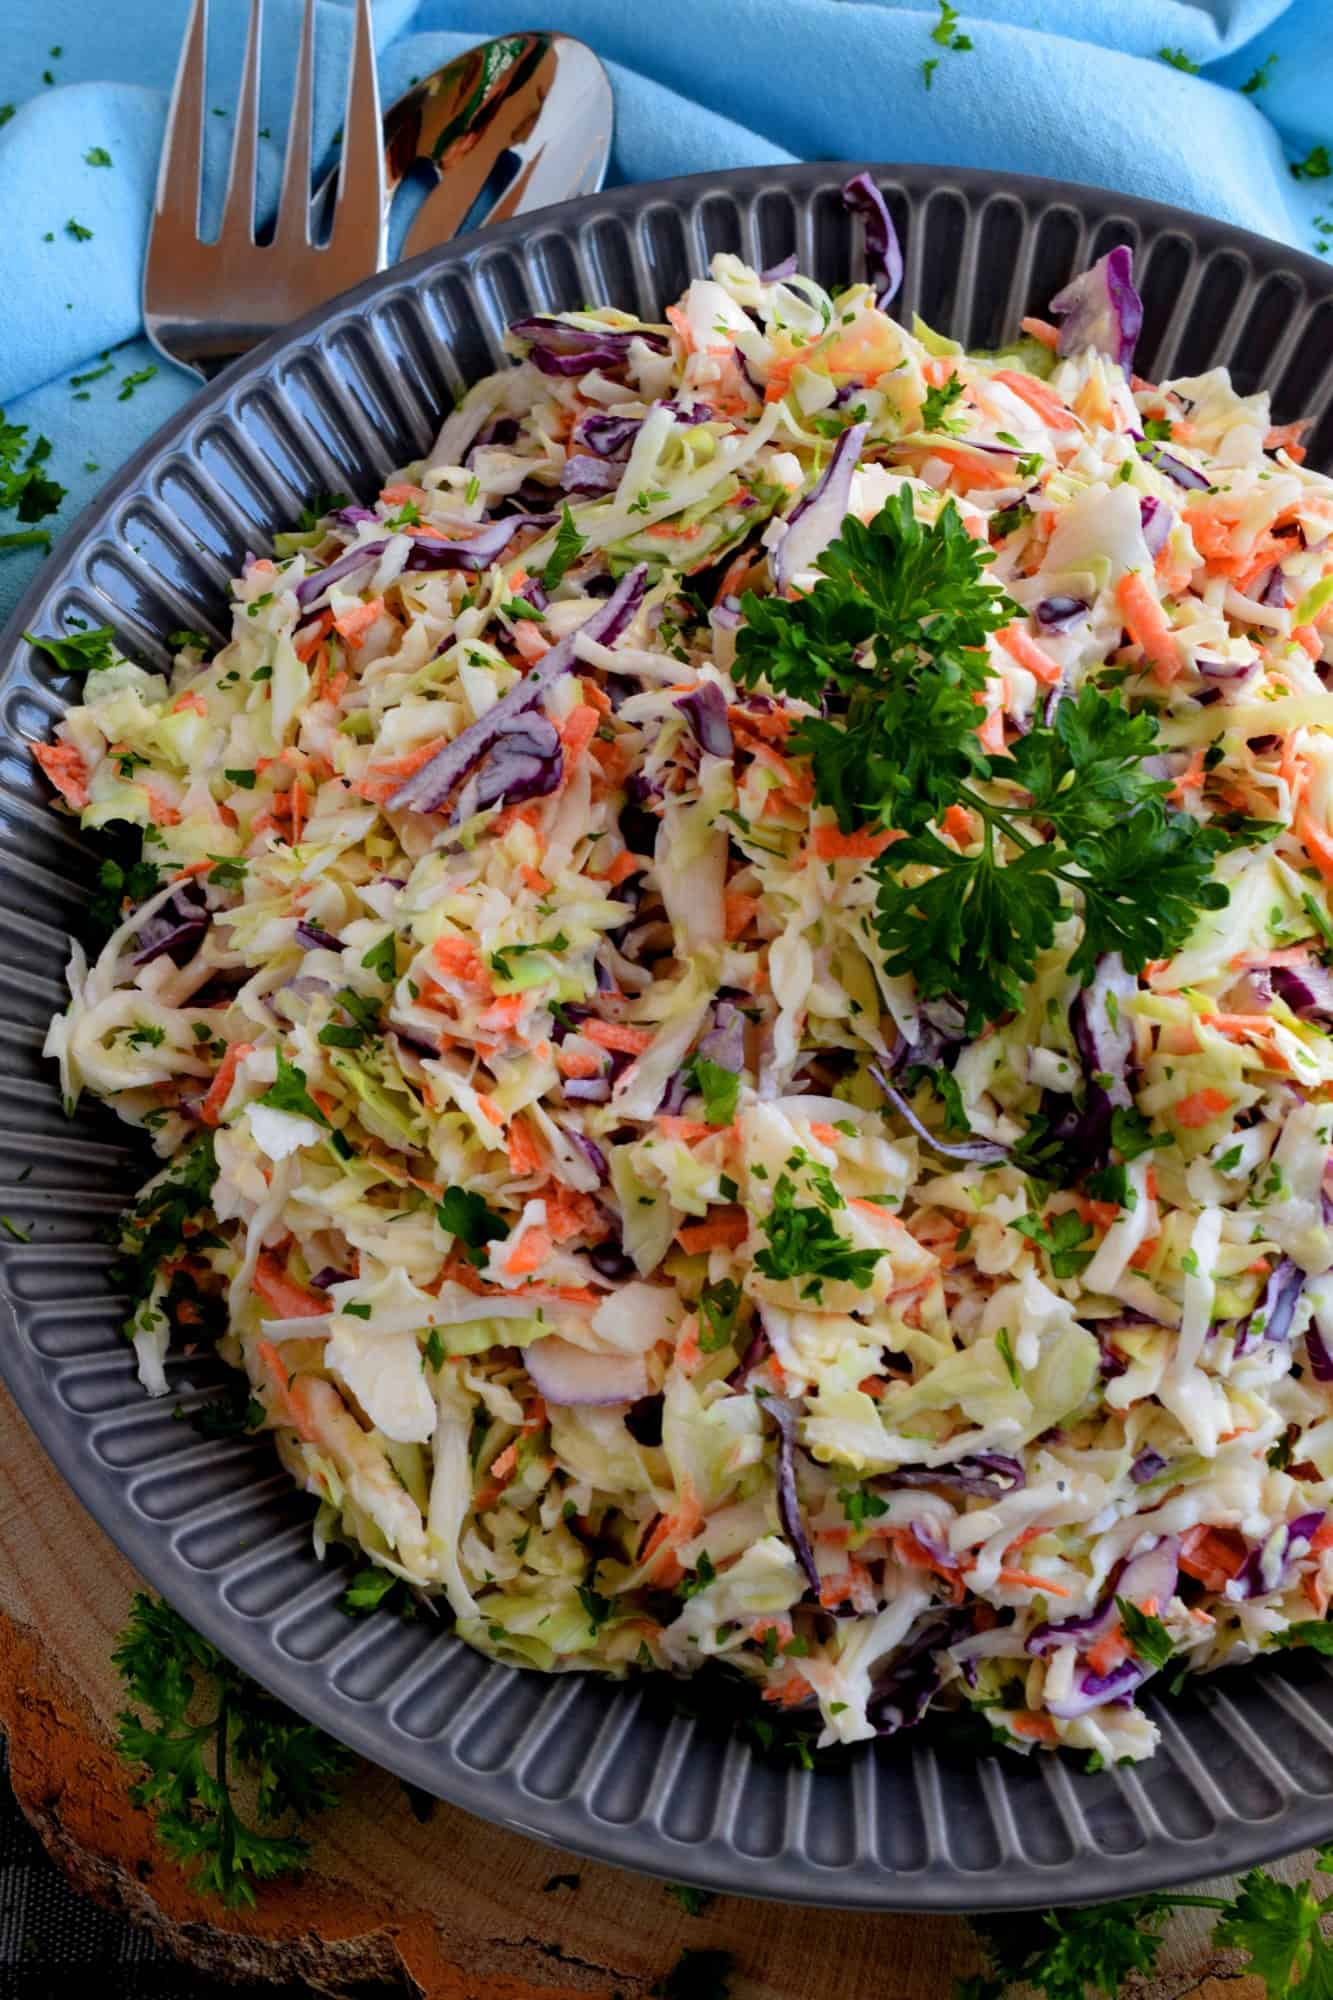 Home Style Creamy Coleslaw